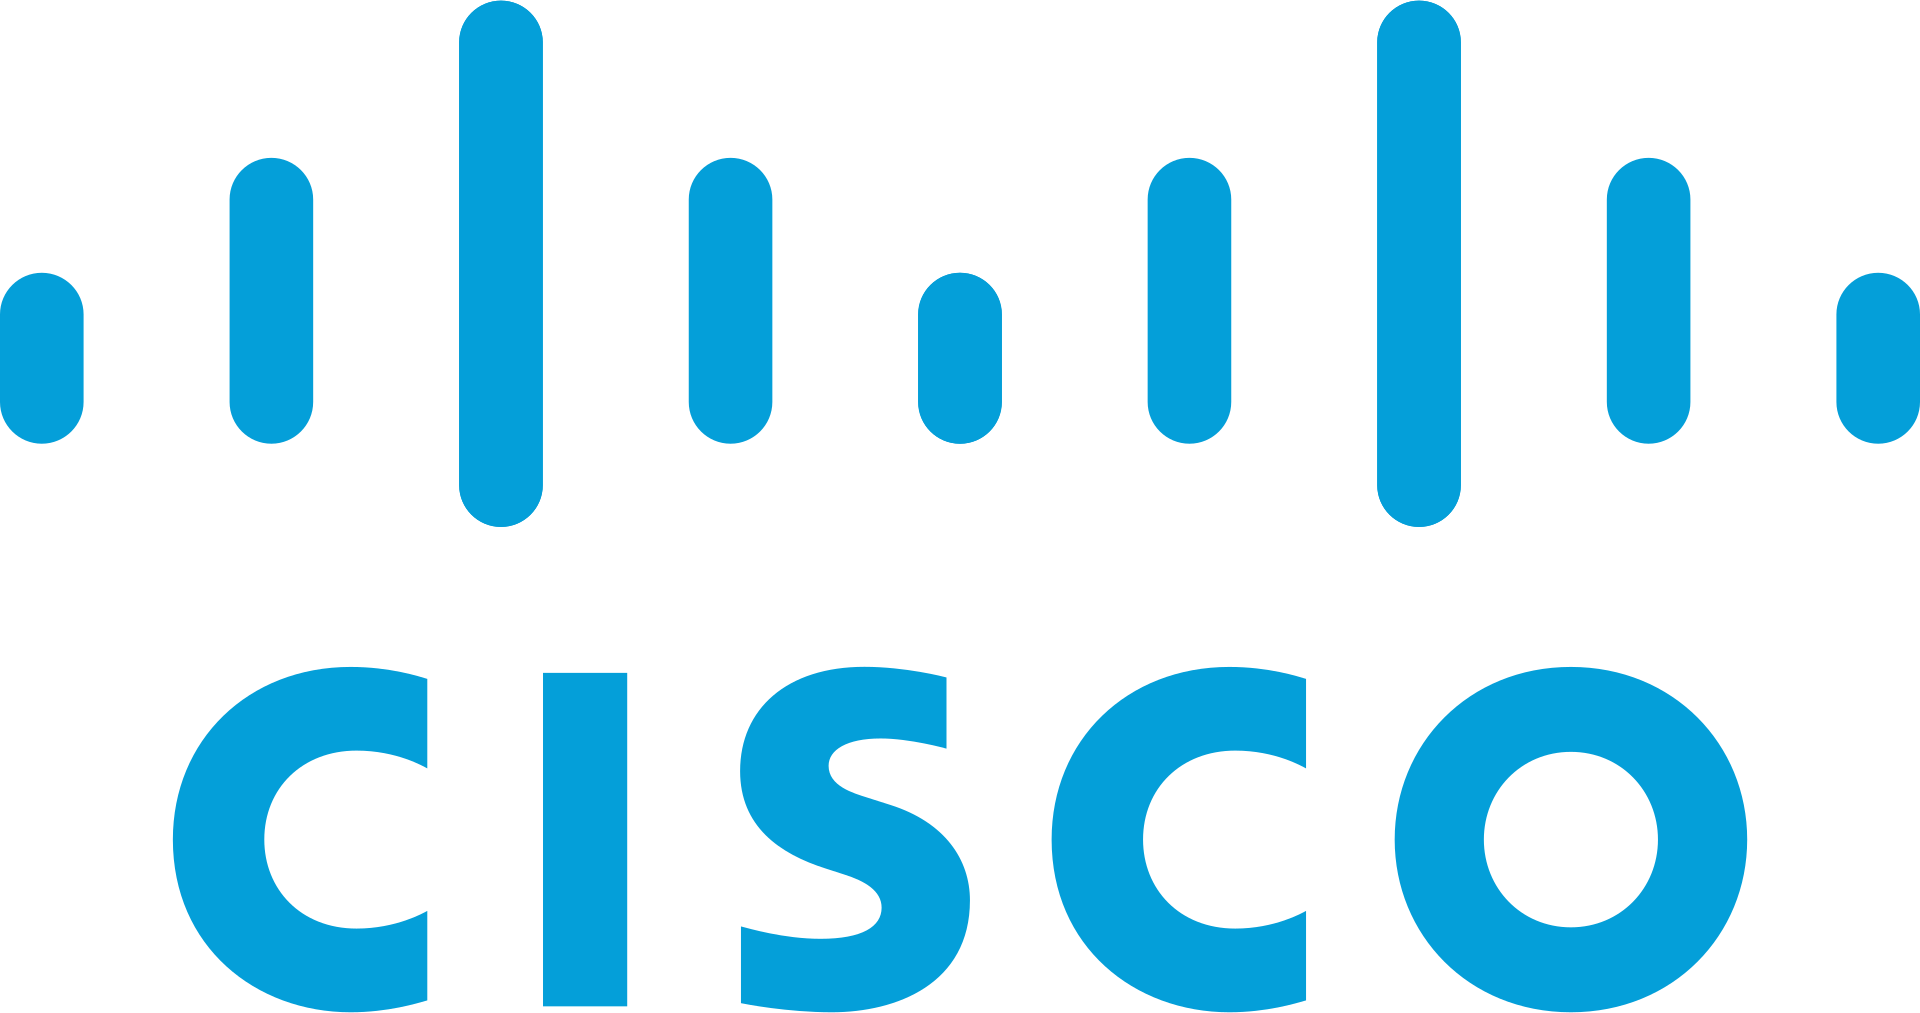 Cisco logo blue